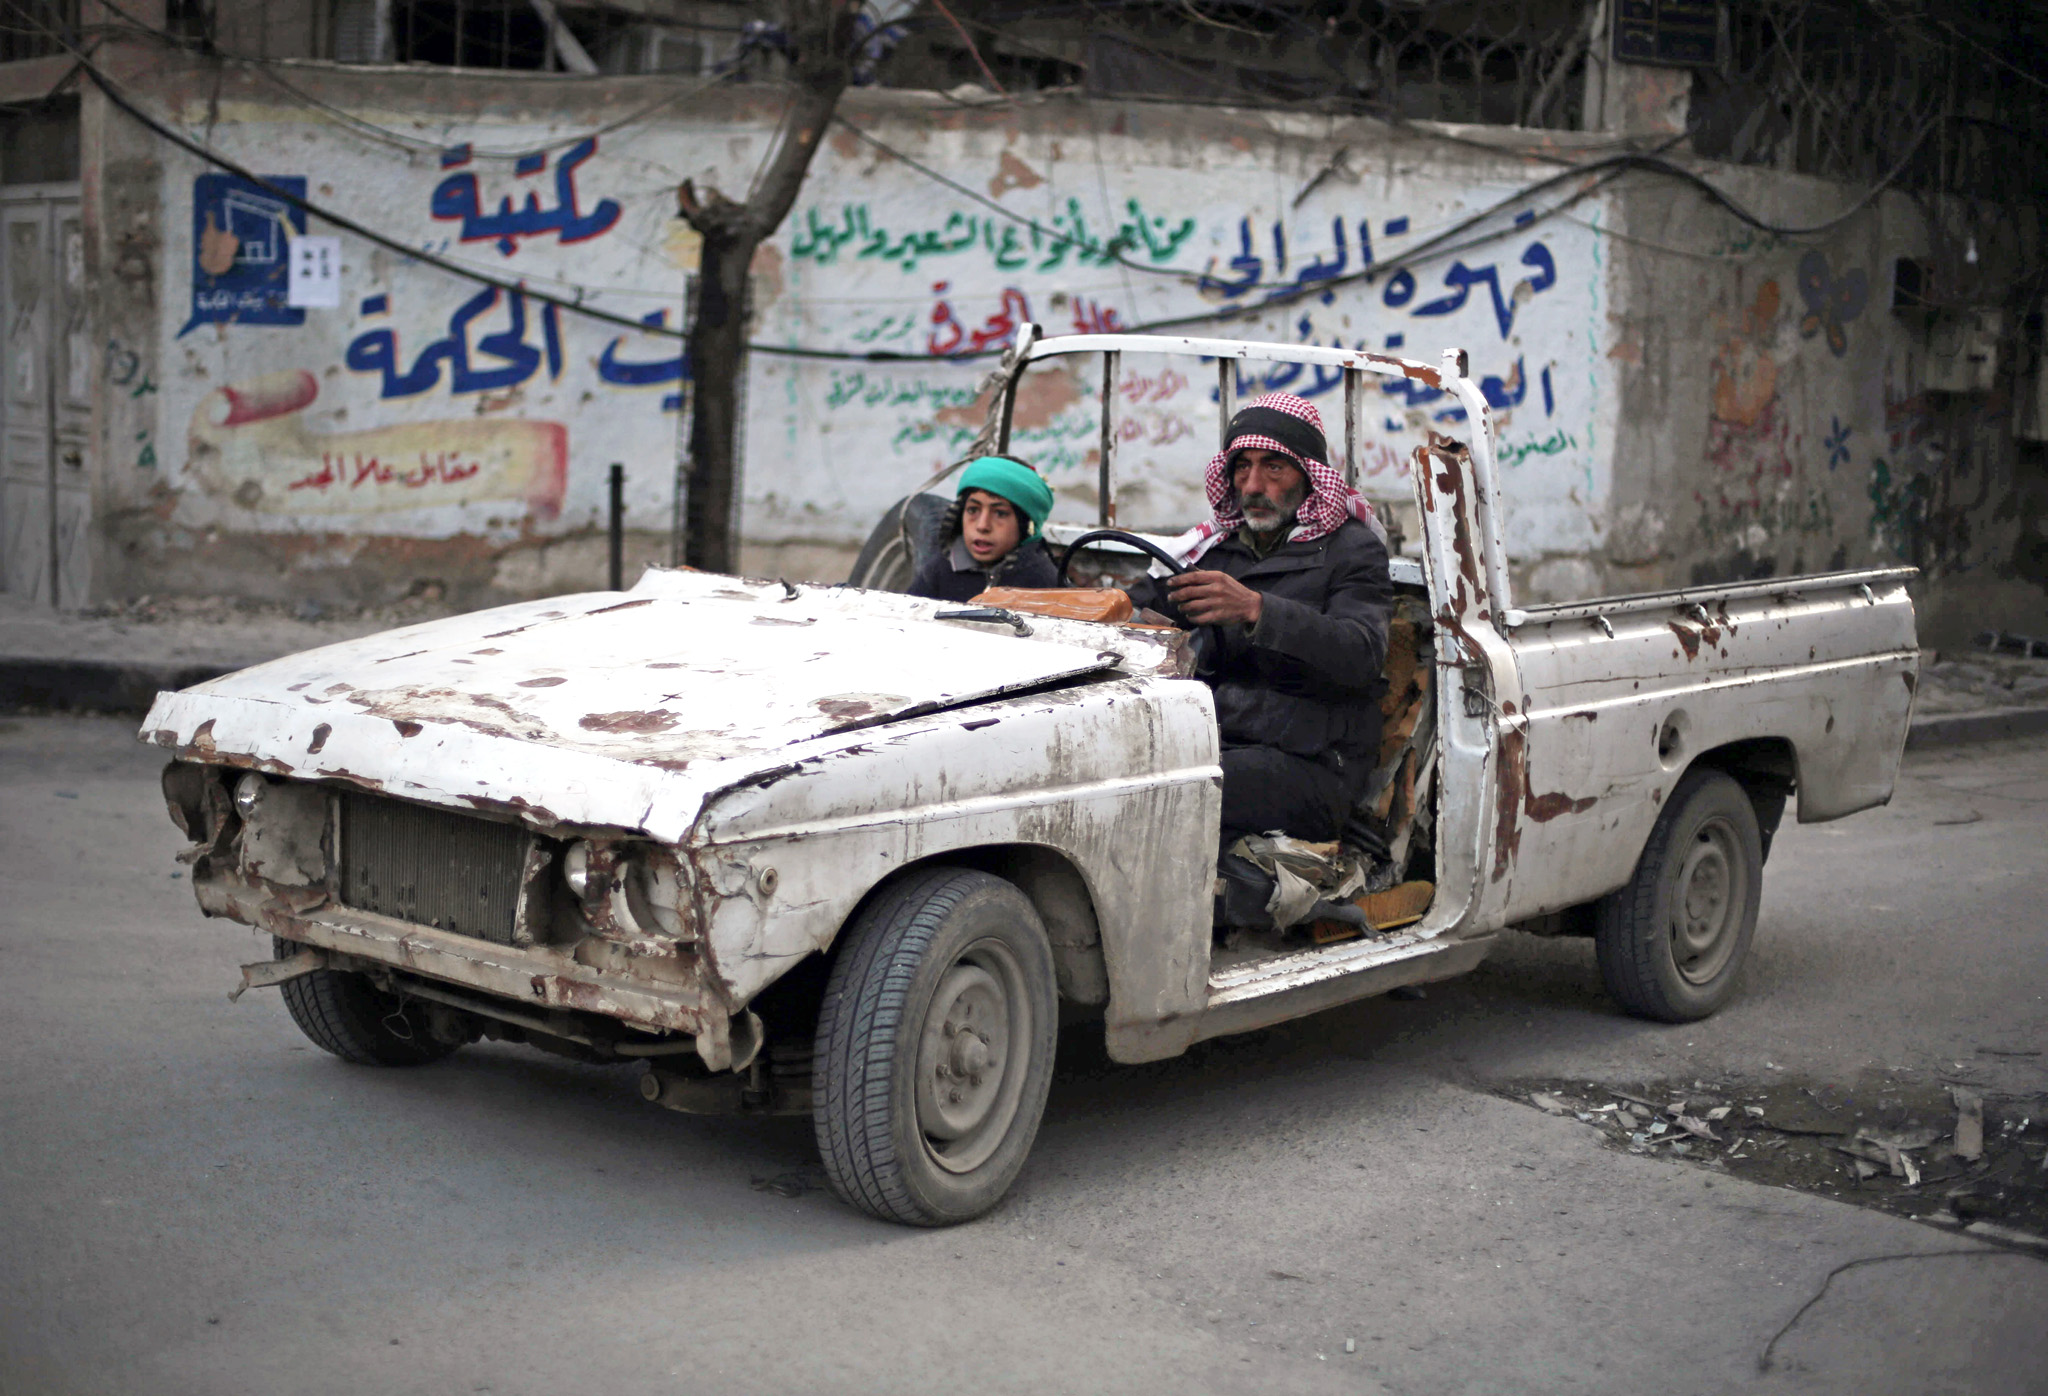 A Syrian man and his son drive in vehicle battered by years on conflict in the rebel-held area of Douma, east of the capital Damascus, on November 10, 2015.